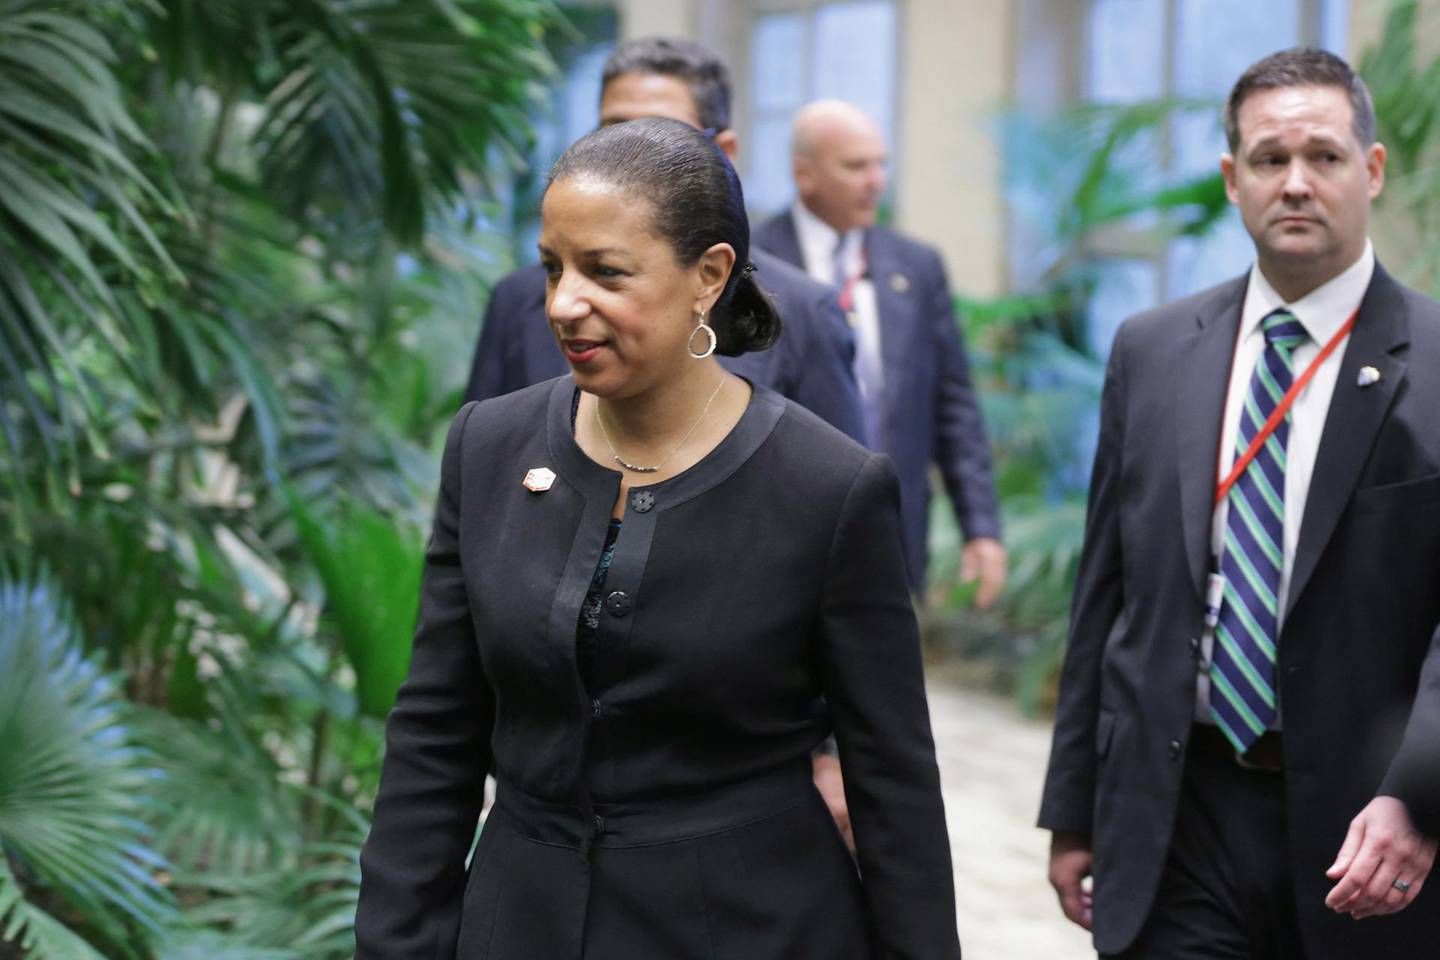 HAVANA, CUBA - MARCH 21:  U.S. National Security Advisor Susan Rice arrives for talks at the Palace of the Revolution March 21, 2016 in Havana, Cuba. The first sitting U.S. president to visit Cuba in 88 years, Barack Obama and Castro will sit down for bilateral talks and will deliver joint statements to the news media.  (Photo by Chip Somodevilla/Getty Images)